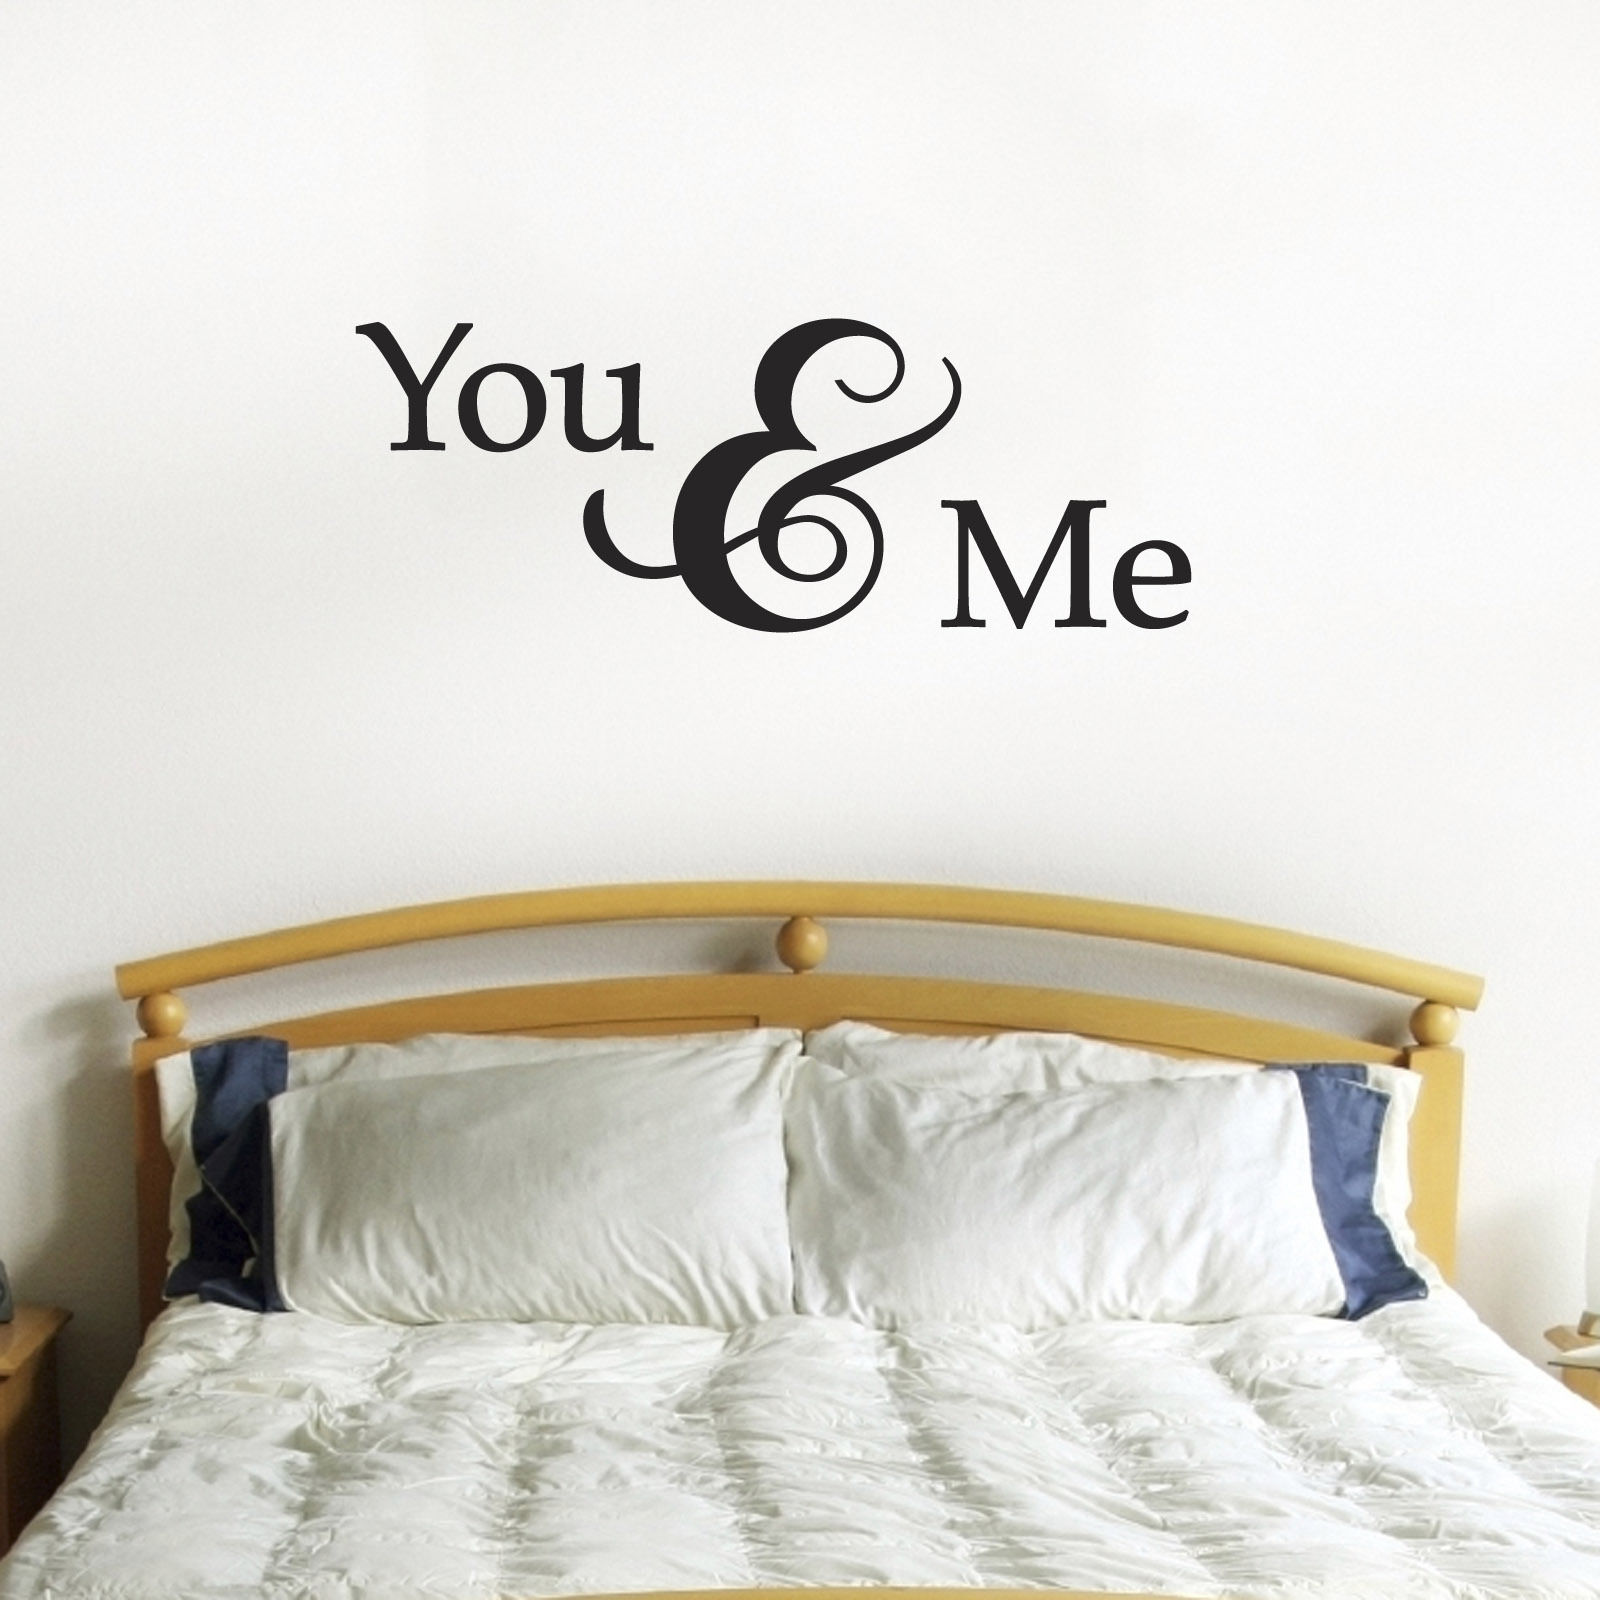 Romantic Bedroom Wall Decals compare prices on romantic walls- online shopping/buy low price